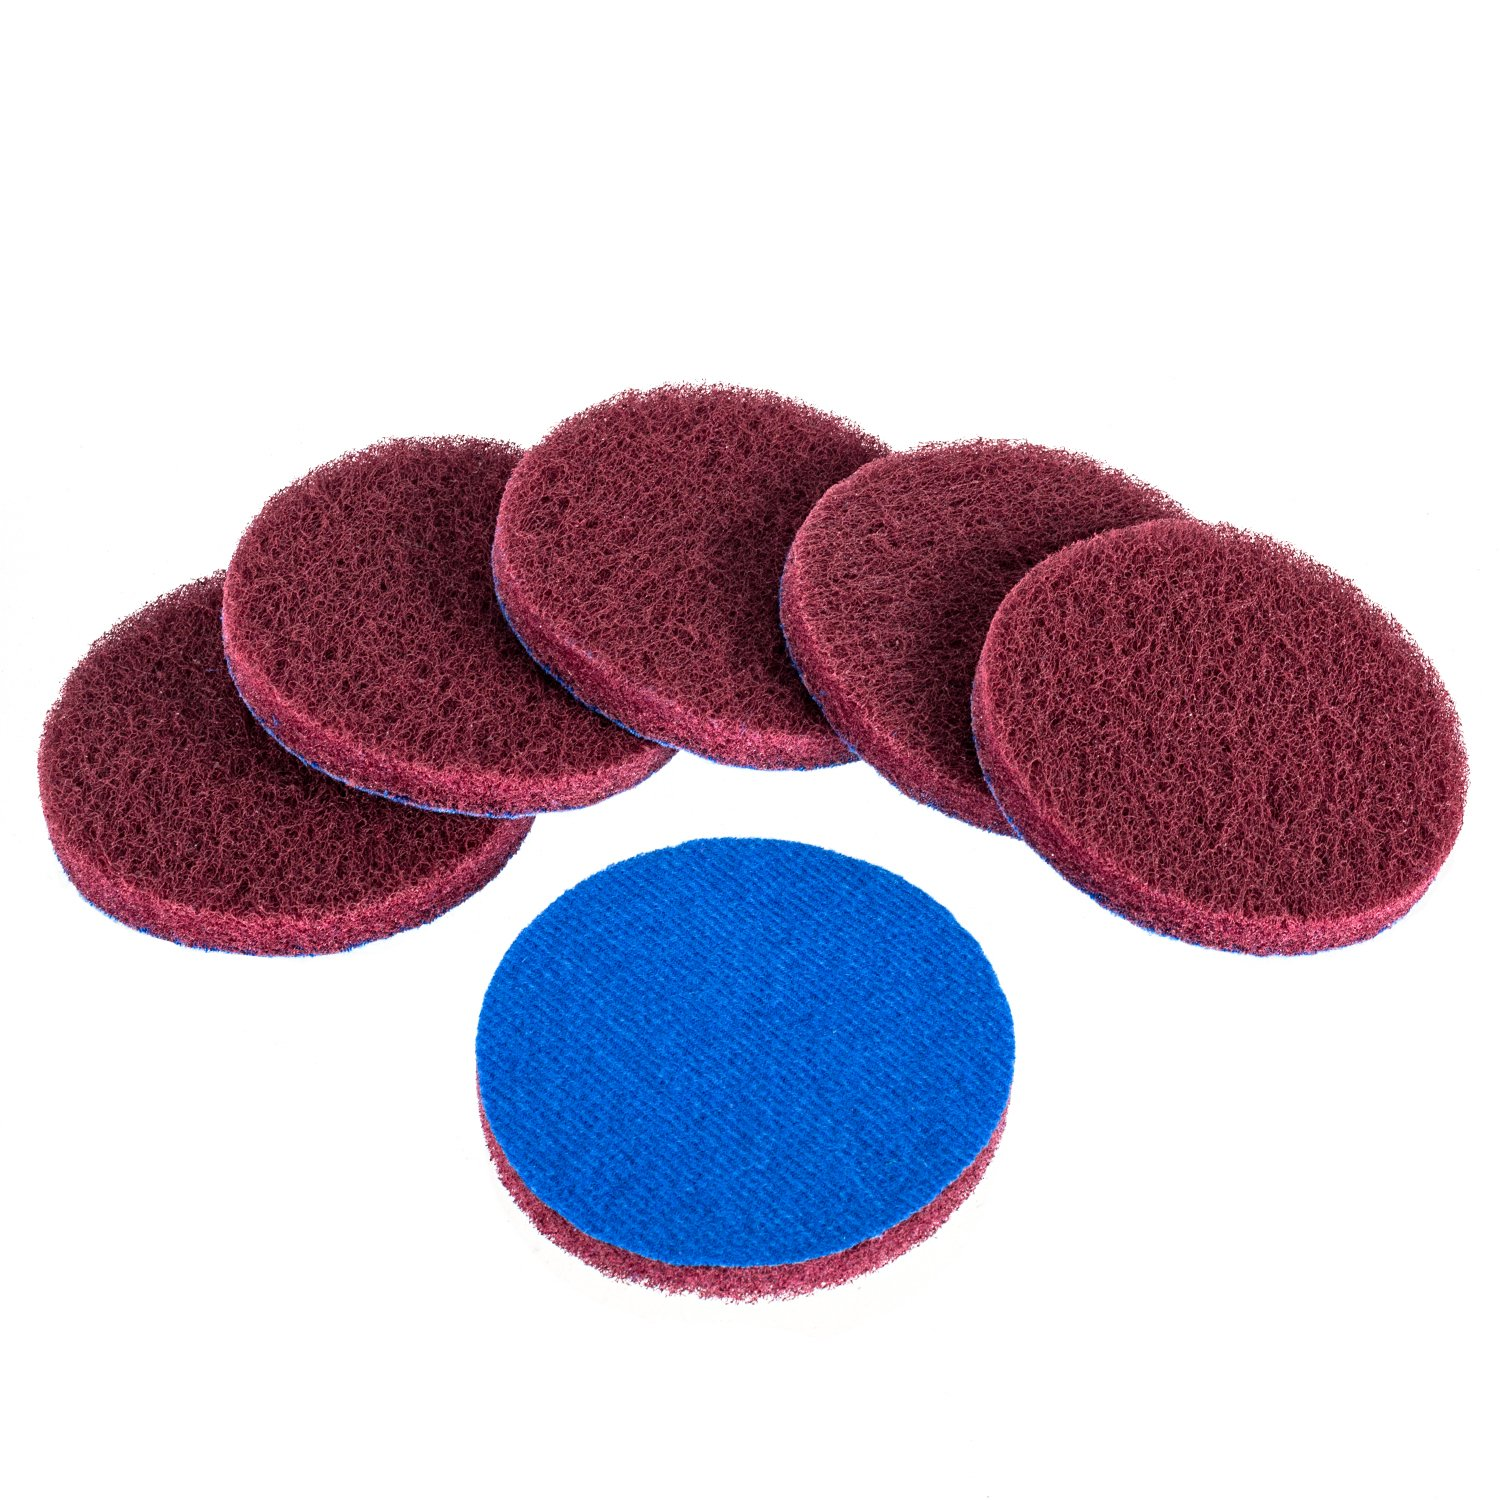 Kichwit 6-Pack Replacement Scrub Pads, Super Abrasive, Green (5 Inch) DB06GPD5IN